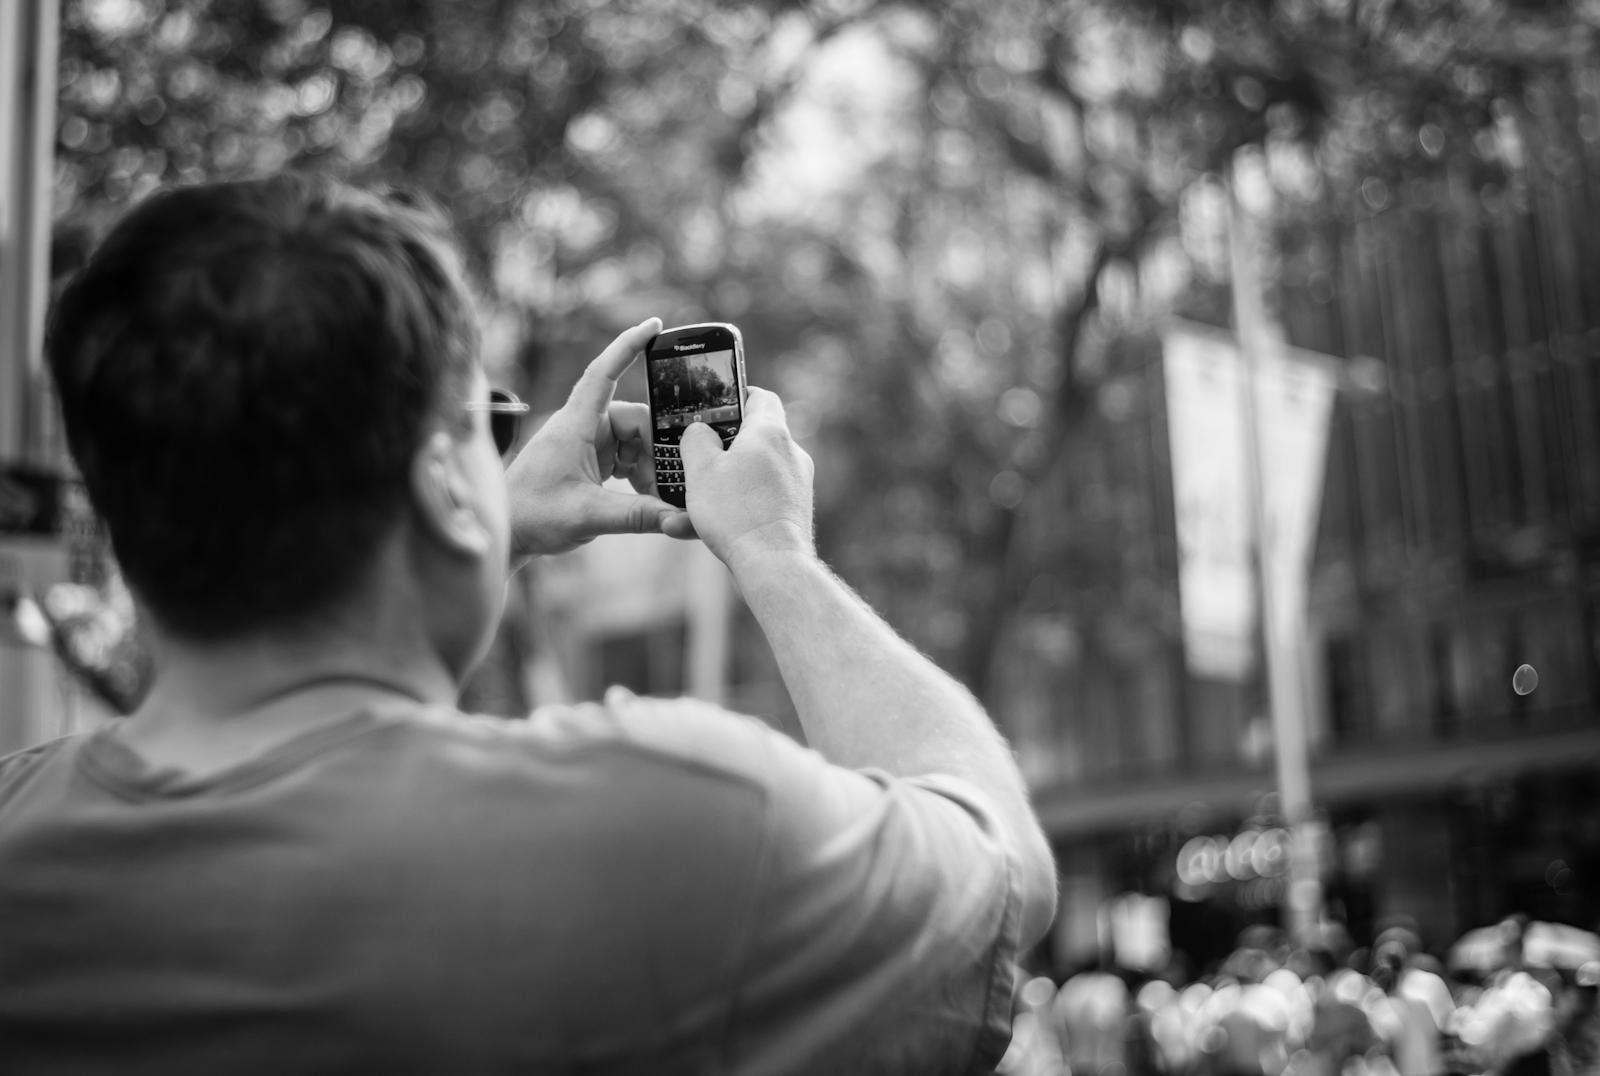 Street photography - Man shooting with his mobile phone